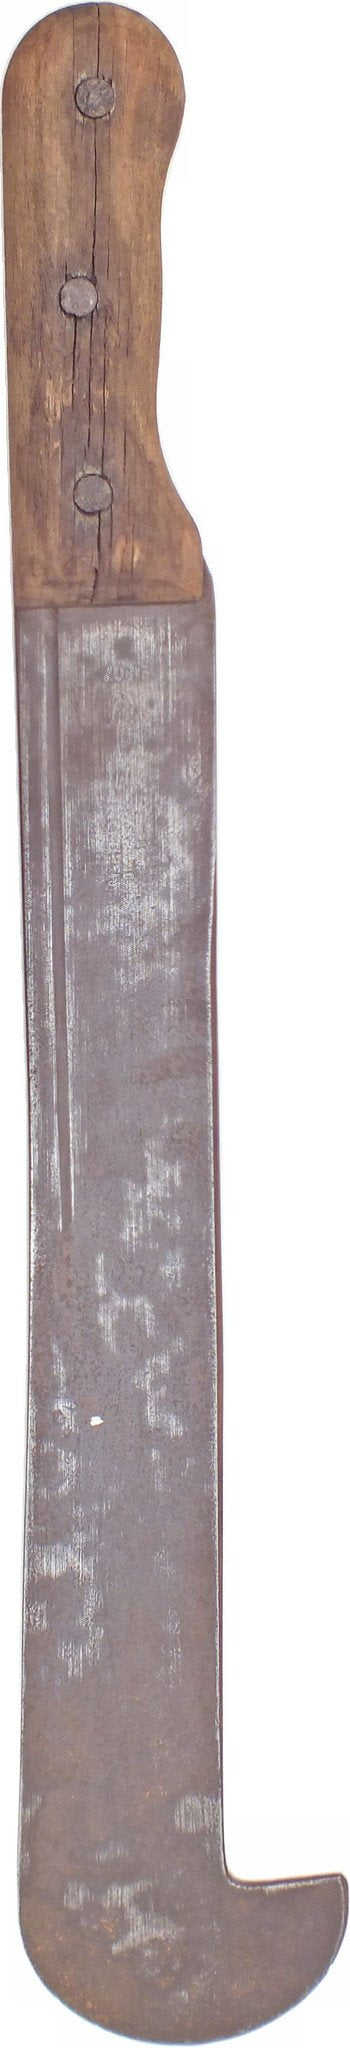 African Slave Trade Machete - Product